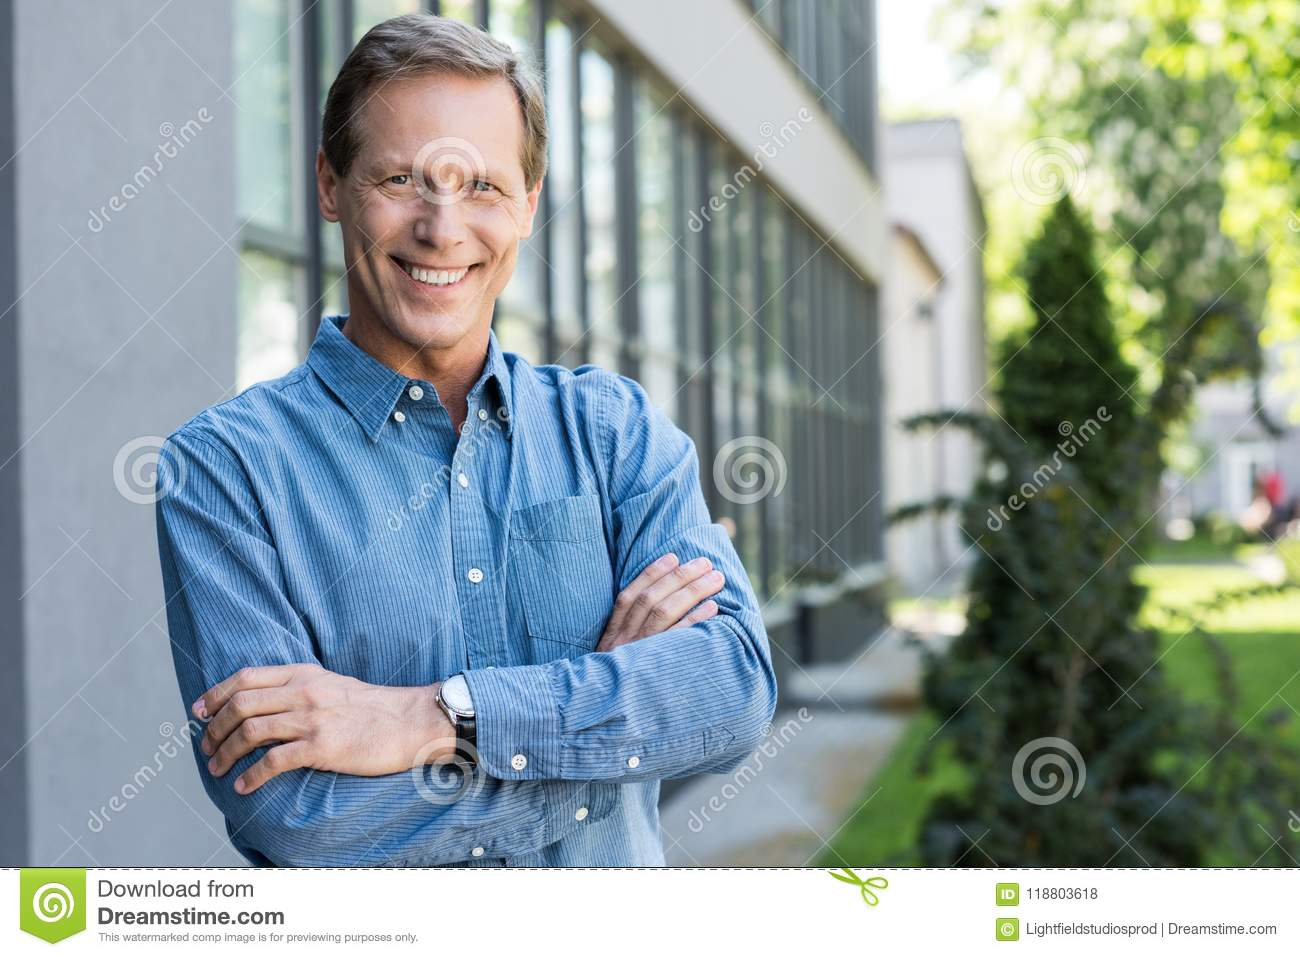 cheerful middle aged businessman posing with crossed arms near office